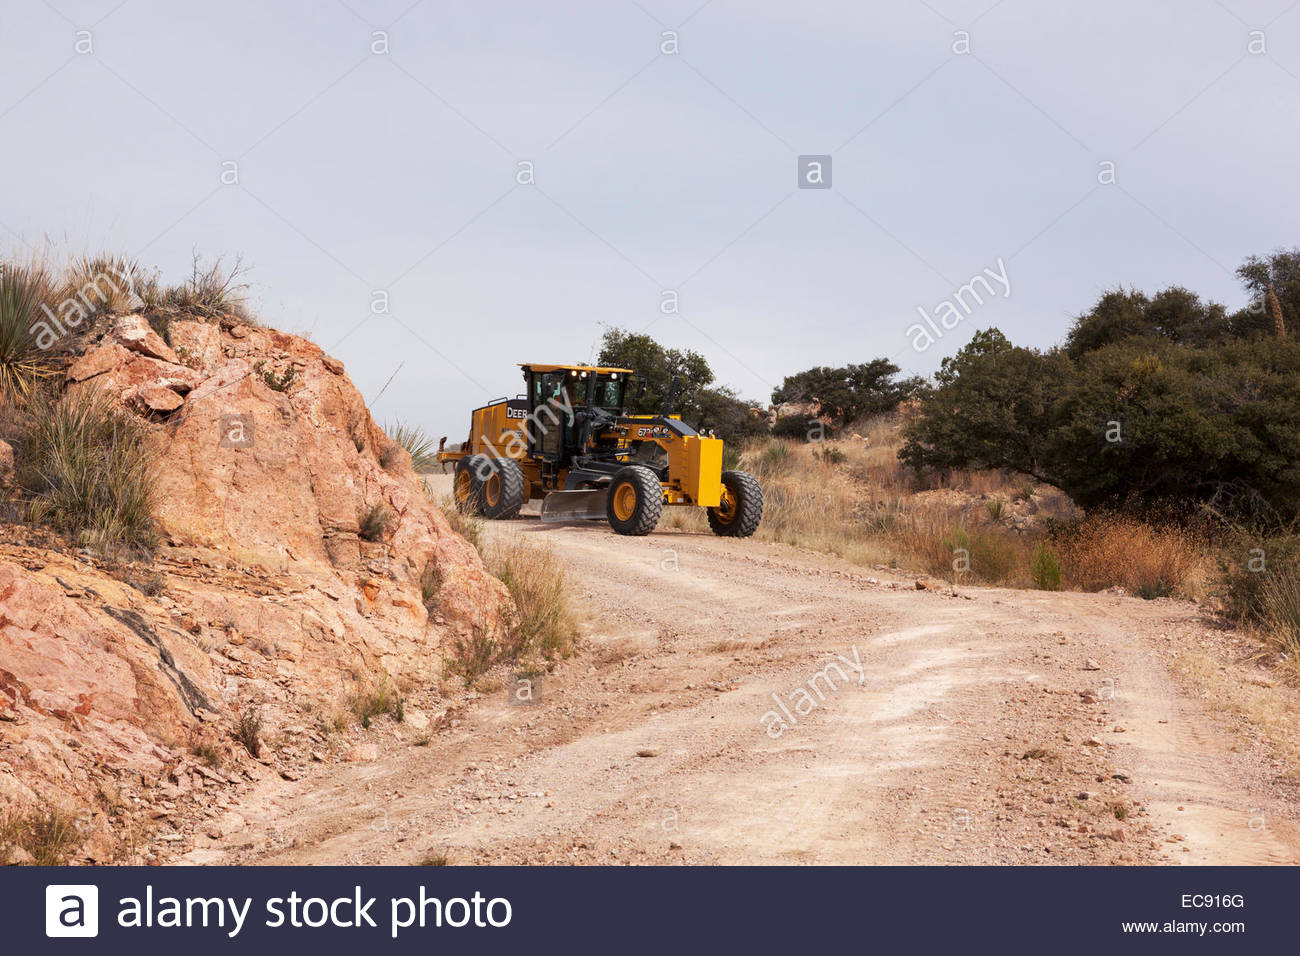 John Deere 672G Motor Grader grading forest road in southern Arizona operator visible in cab - Stock Image